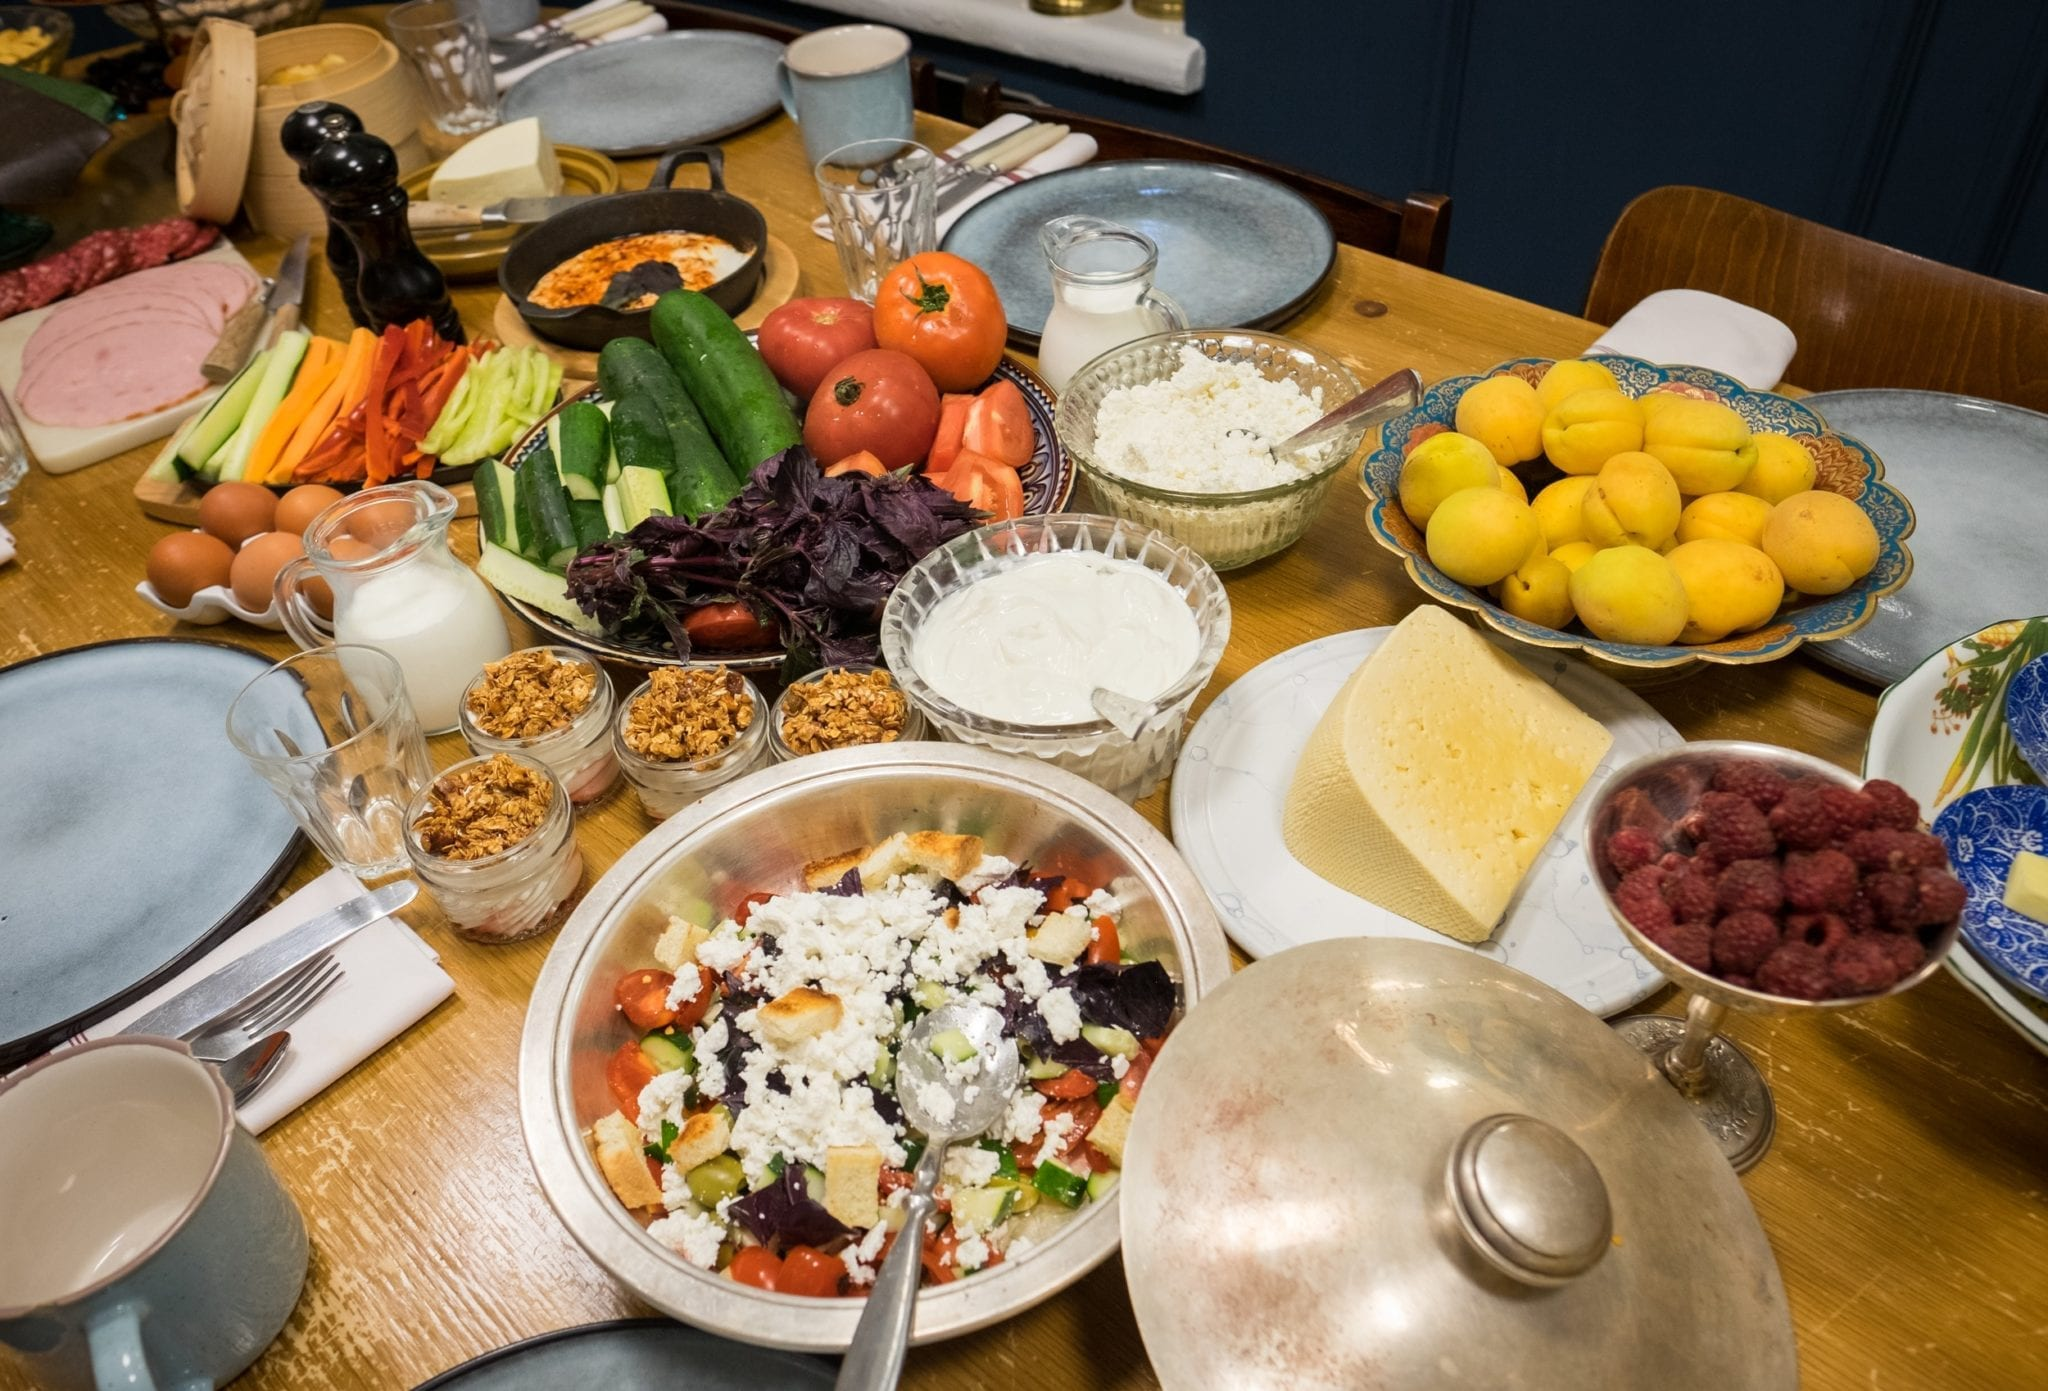 Plates of Georgian food -- salads topped with cheese, fresh vegetables, apricots, raspberries, yogurt.